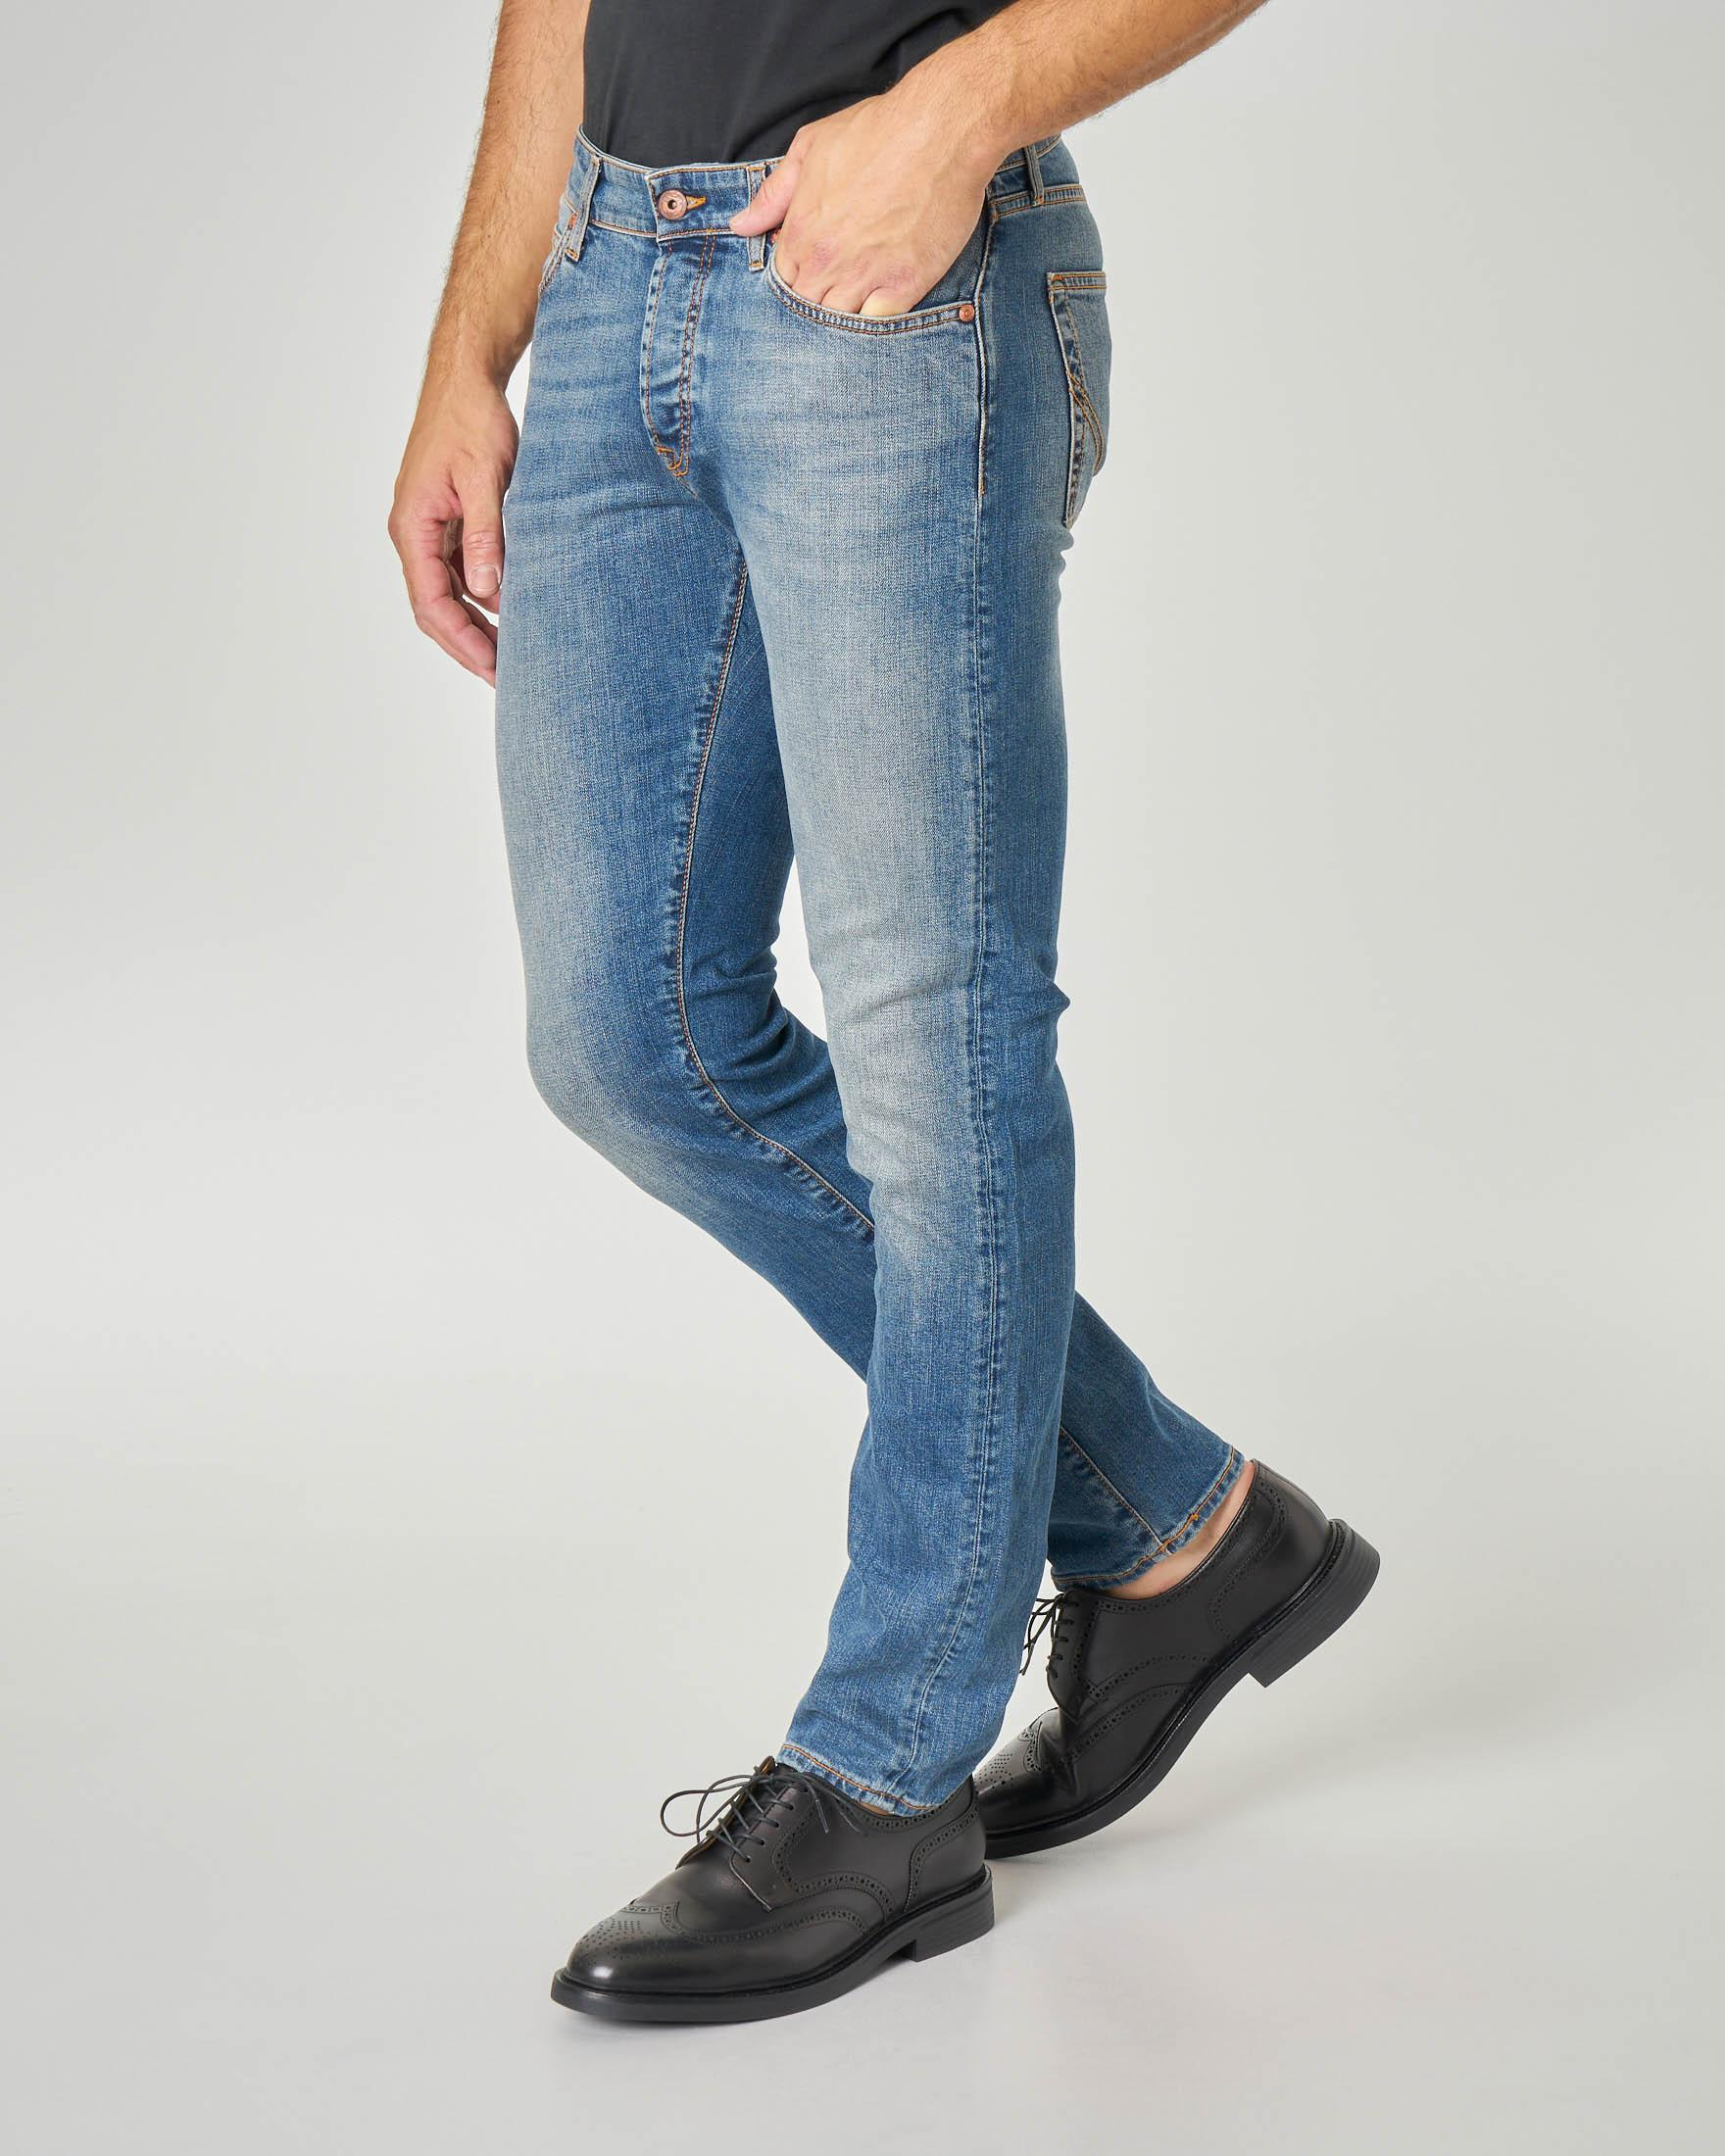 Jeans 529 Weared10  lavaggio super stone wash con sabbiature